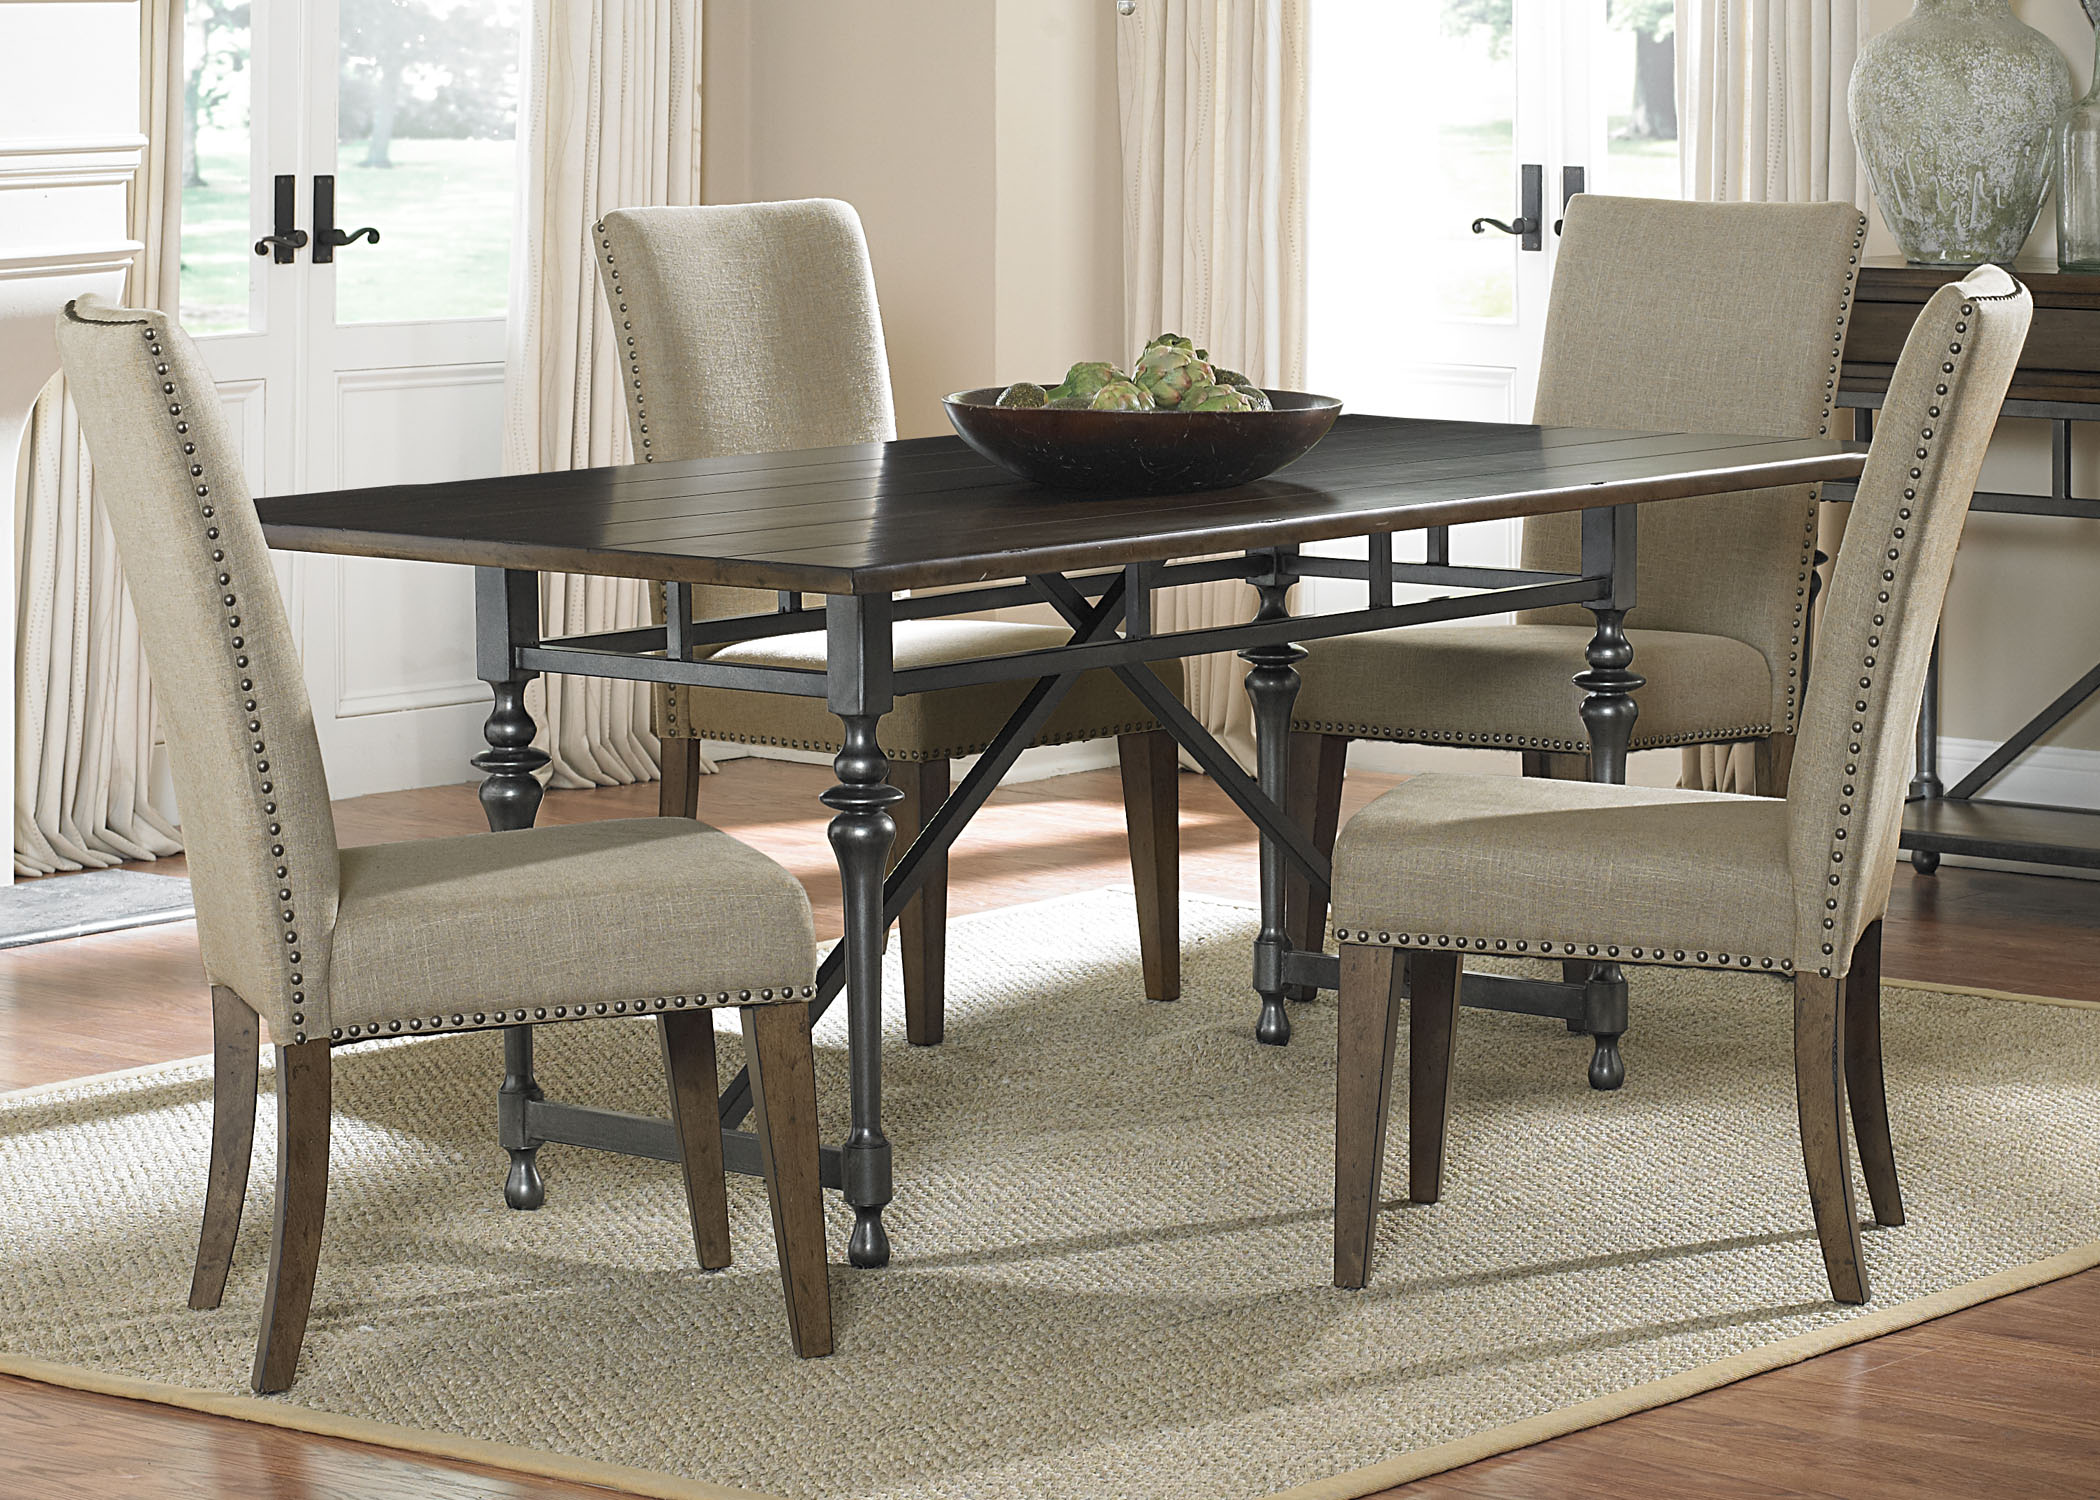 Liberty Furniture Ivy Park 5 Piece Rectangular Table Set  - Item Number: 563-CD-5RLS